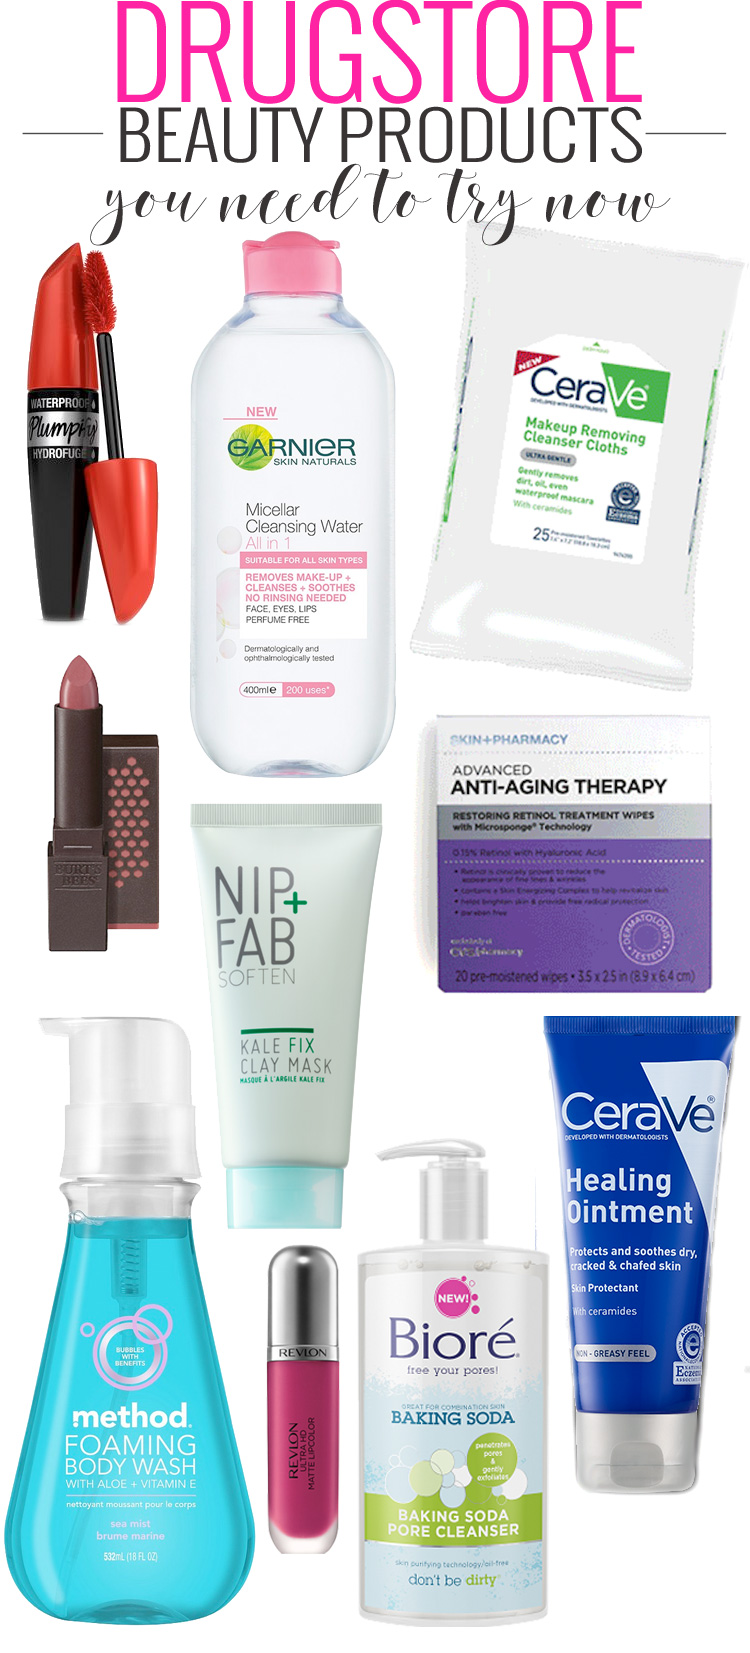 The 10 Drugstore Beauty Products You Need to Try NOW